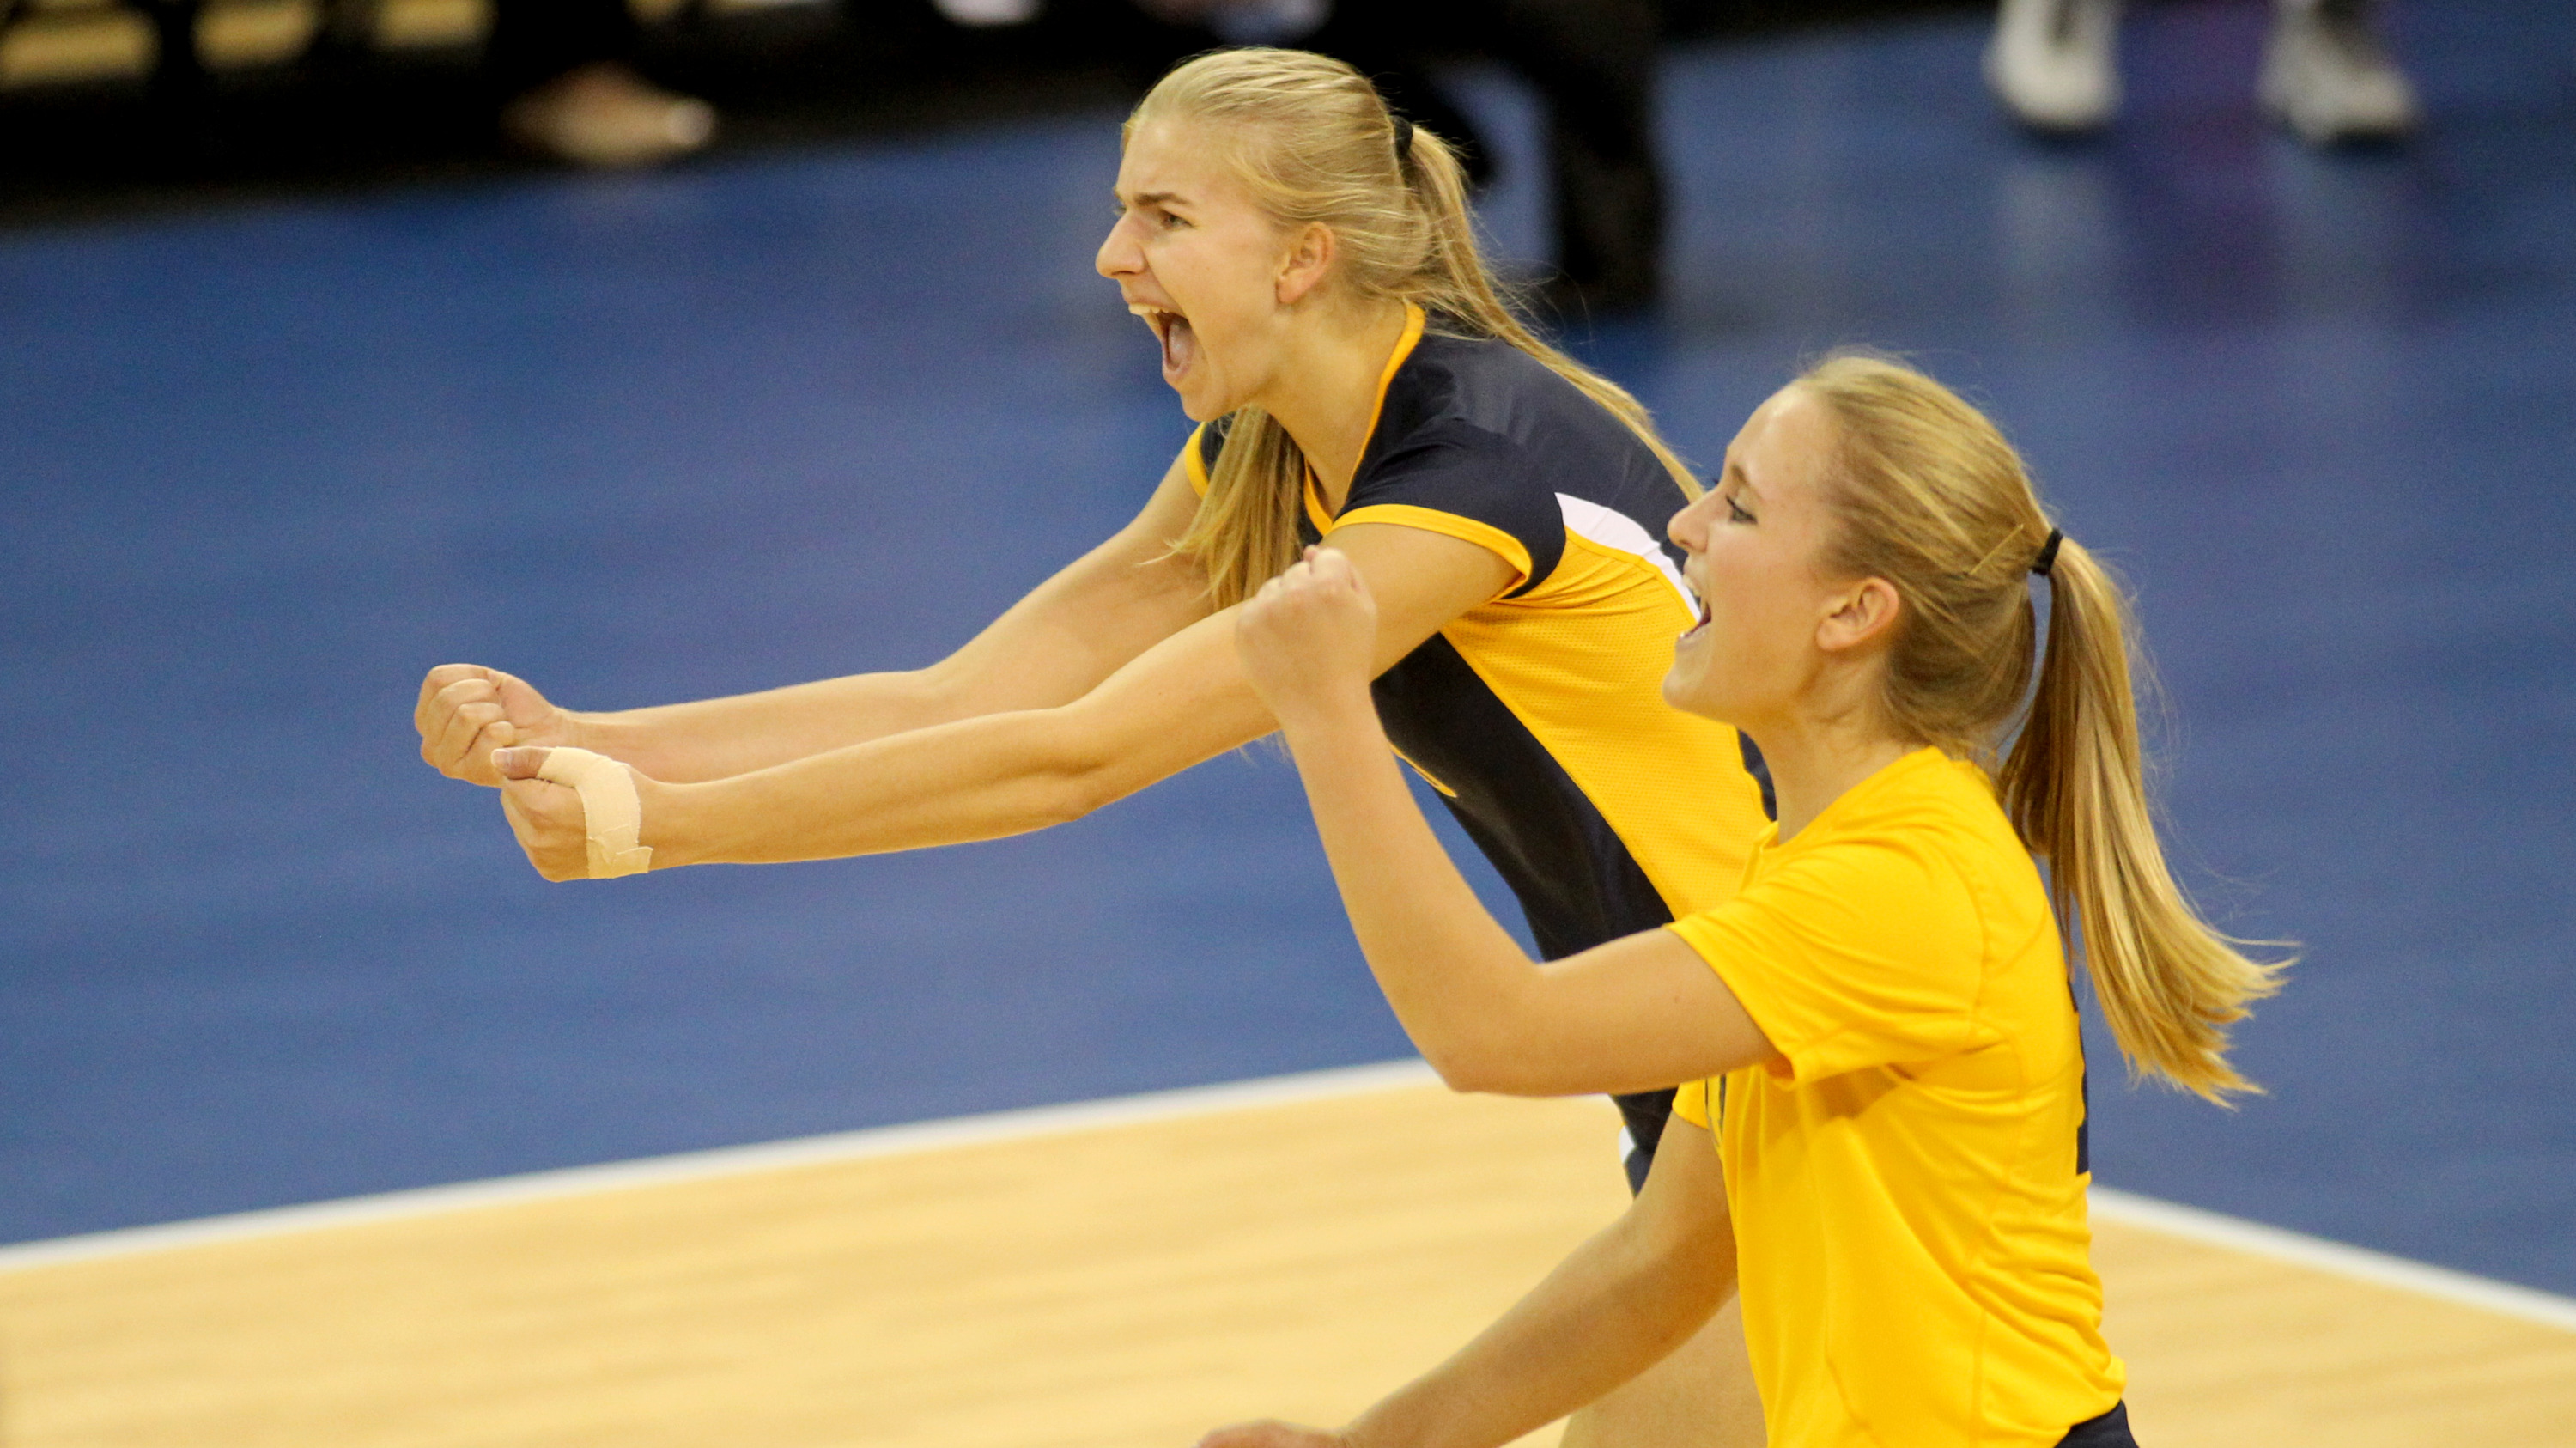 Marquette's all-tournament honorees Nele Barber (left) and Lauren Houg.